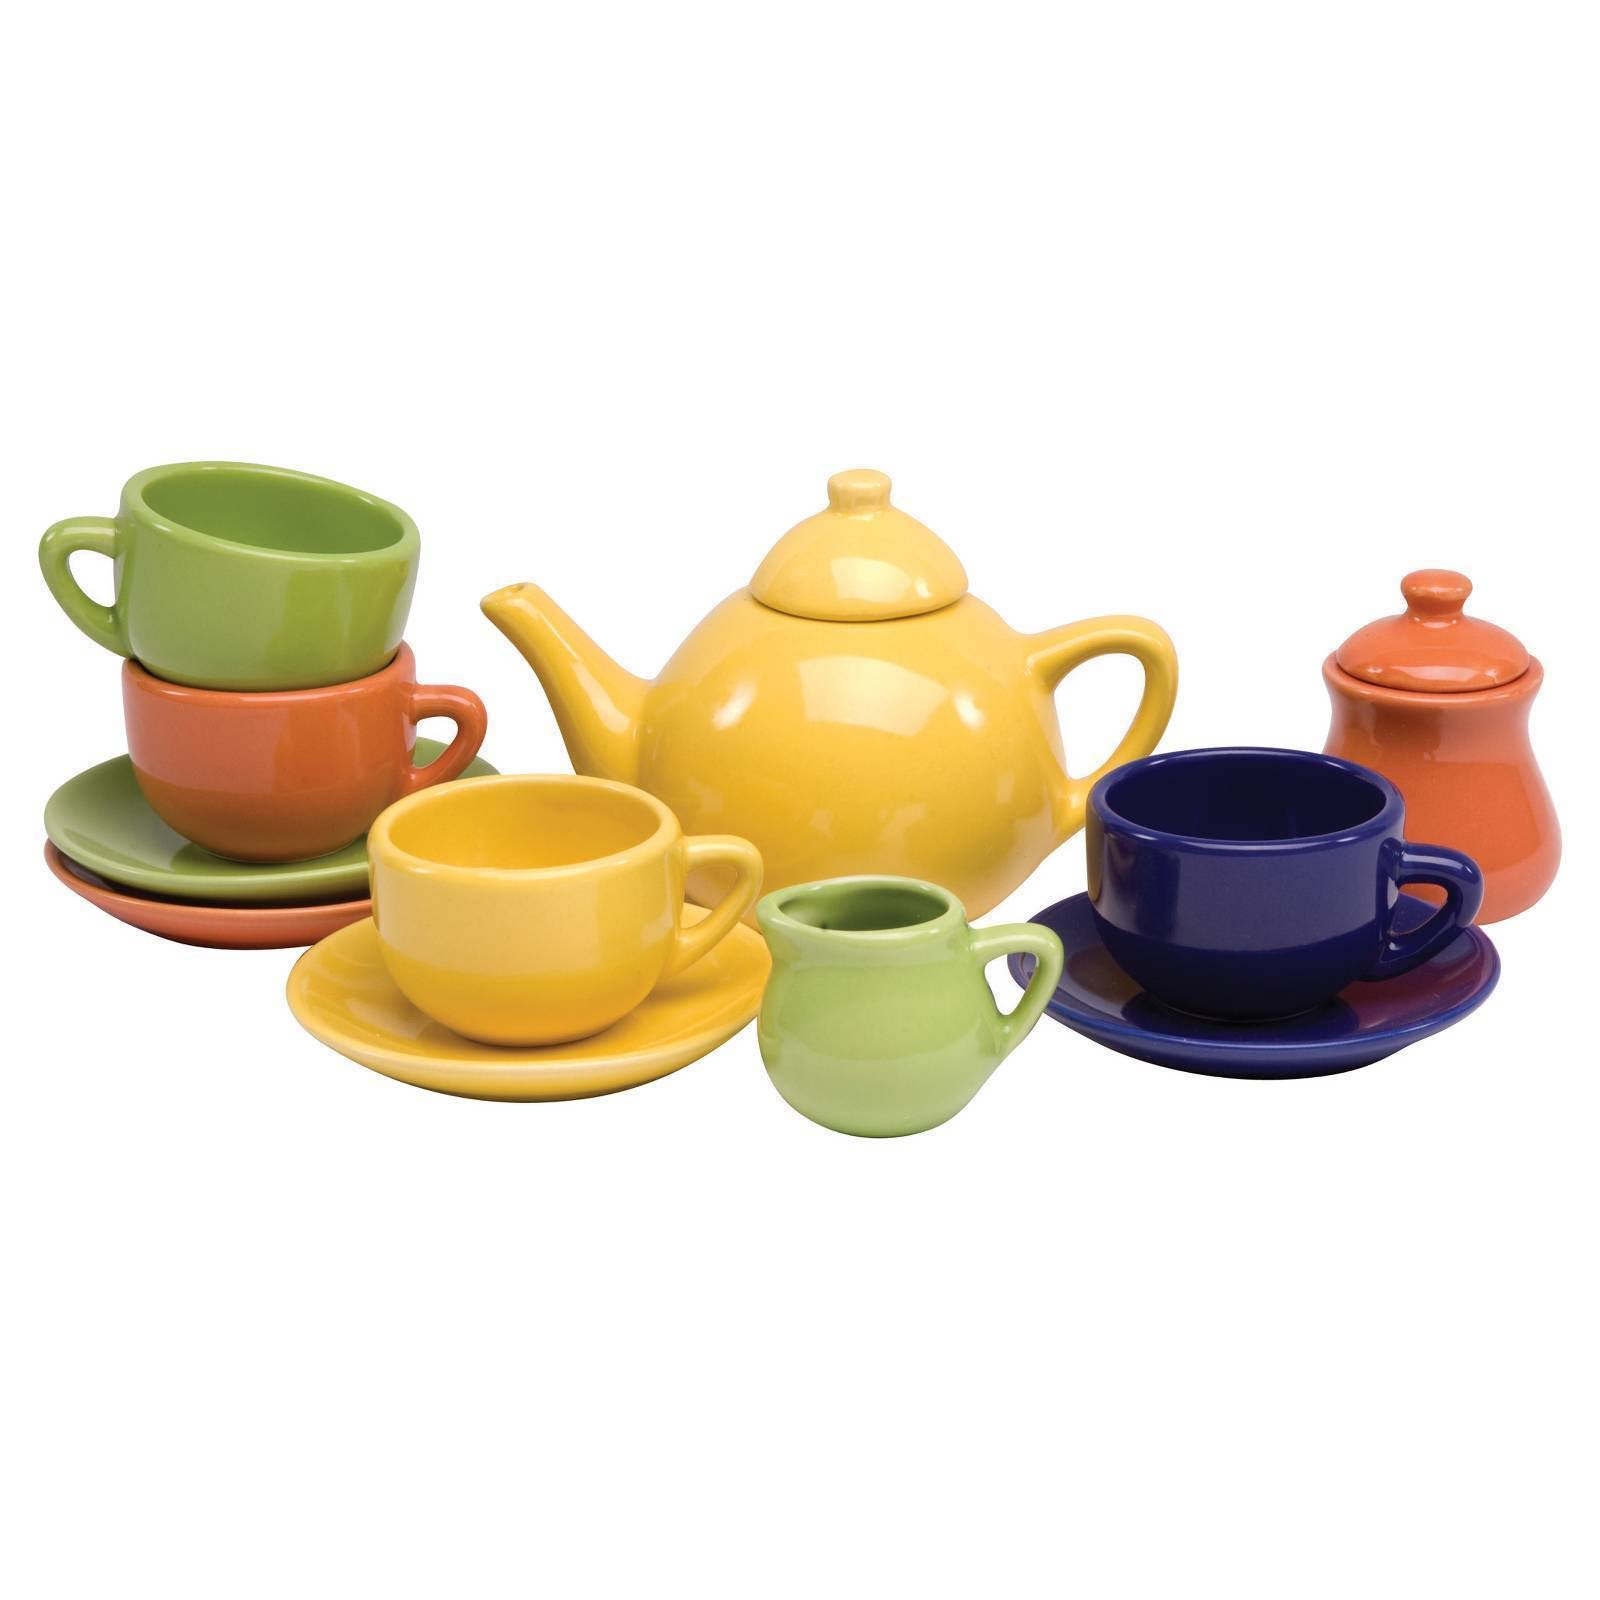 Schylling Children's Tea Set - 13pcs